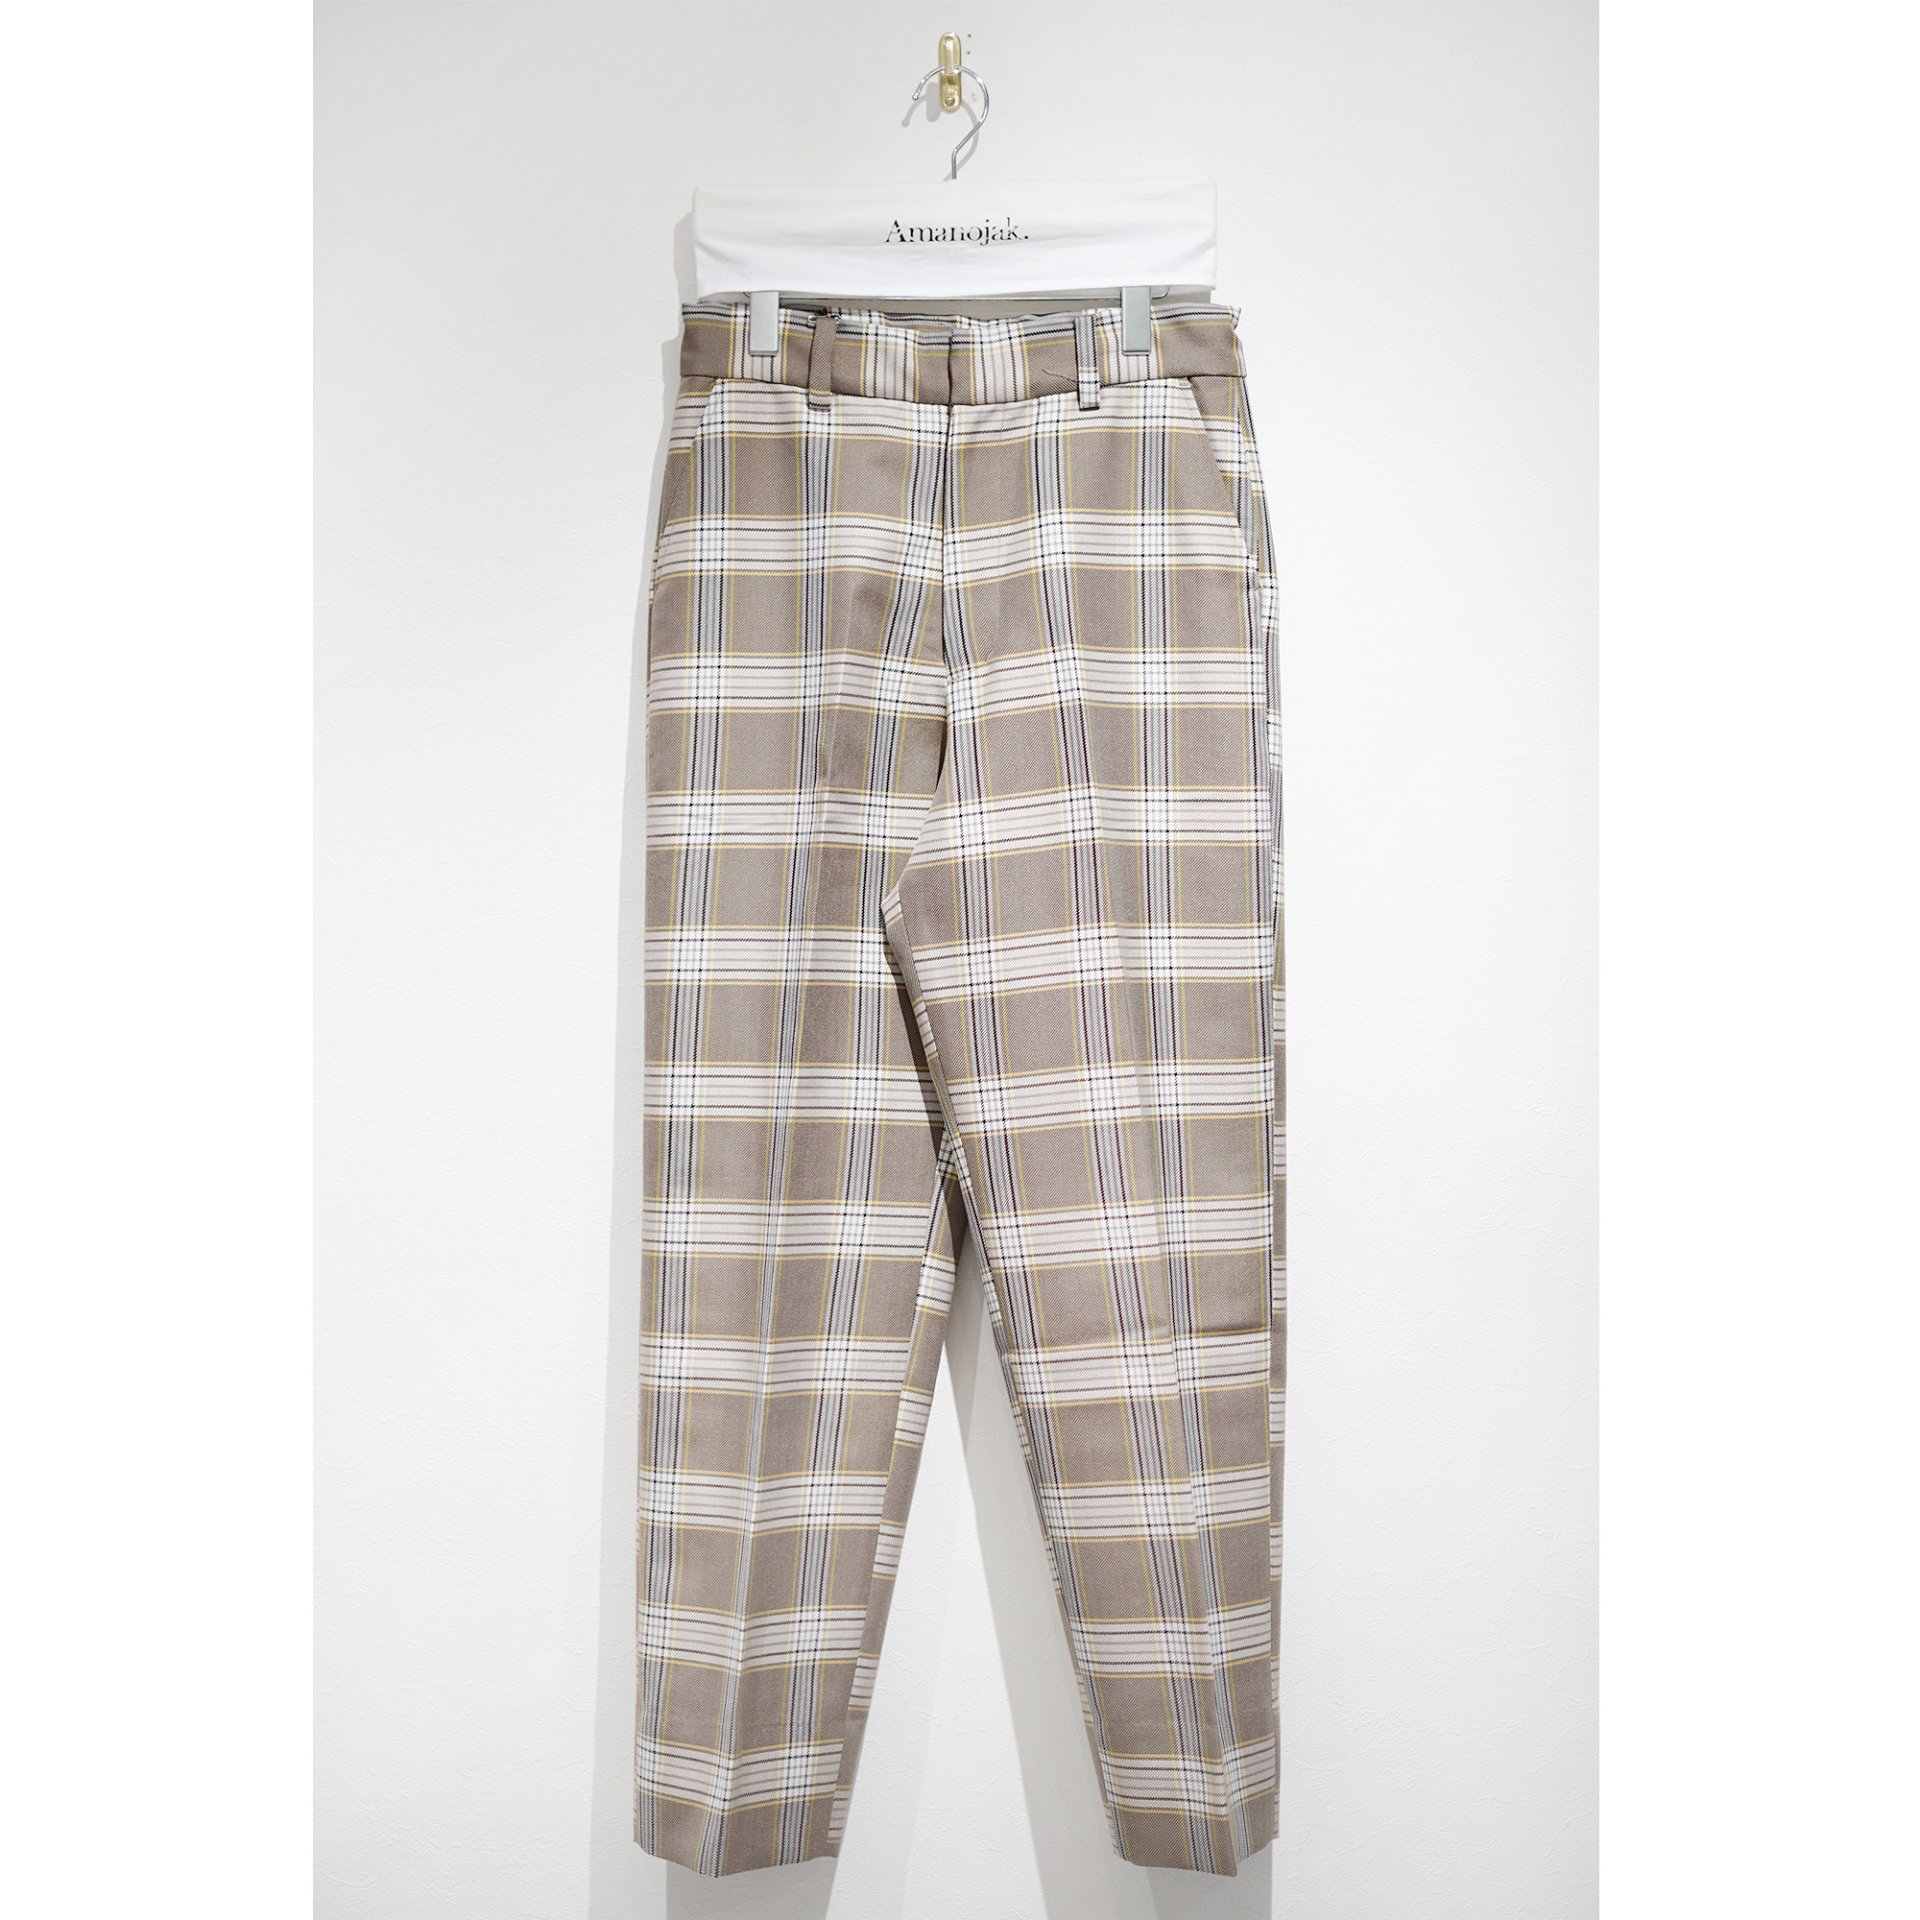 ATHA-WOOL/POLY HIGHDENSITY STRAIGHT EASY TROUSERS TARTAN CHECK